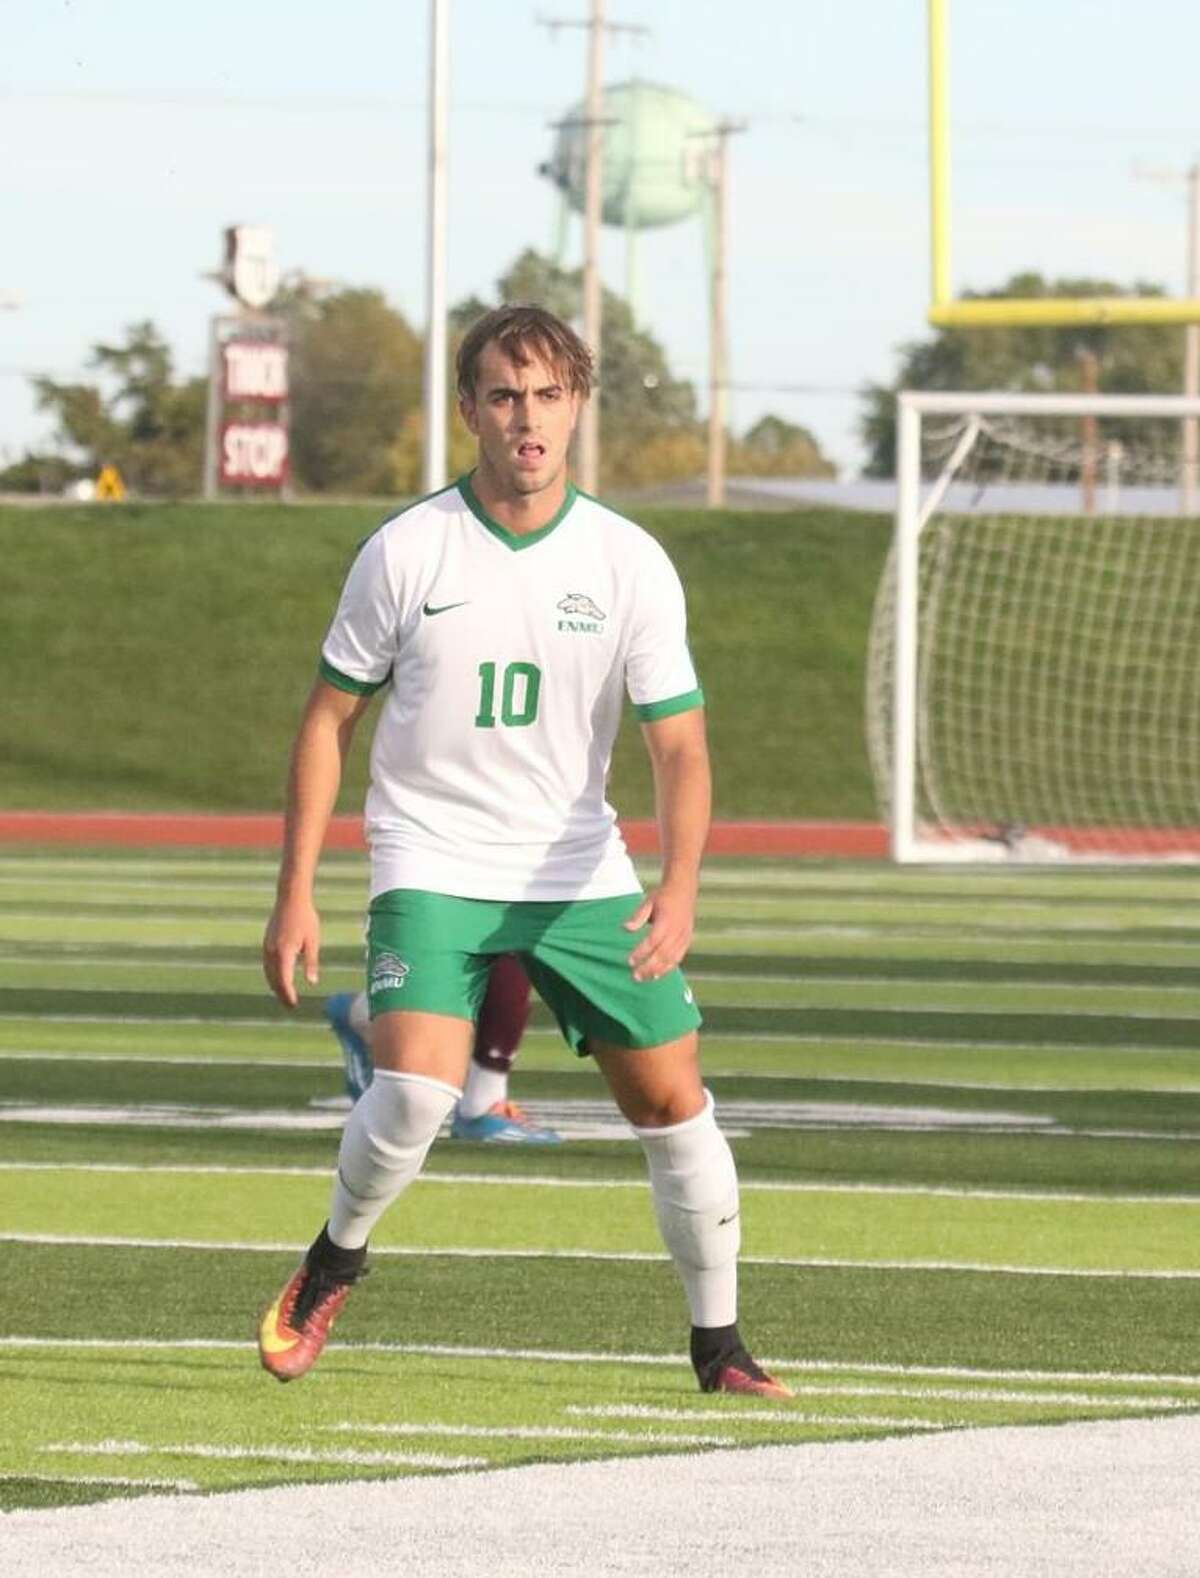 Lucas Vaz helped Eastern New Mexico record its best season in the 15-year history of the program in 2020 as the team went 12-5-1.